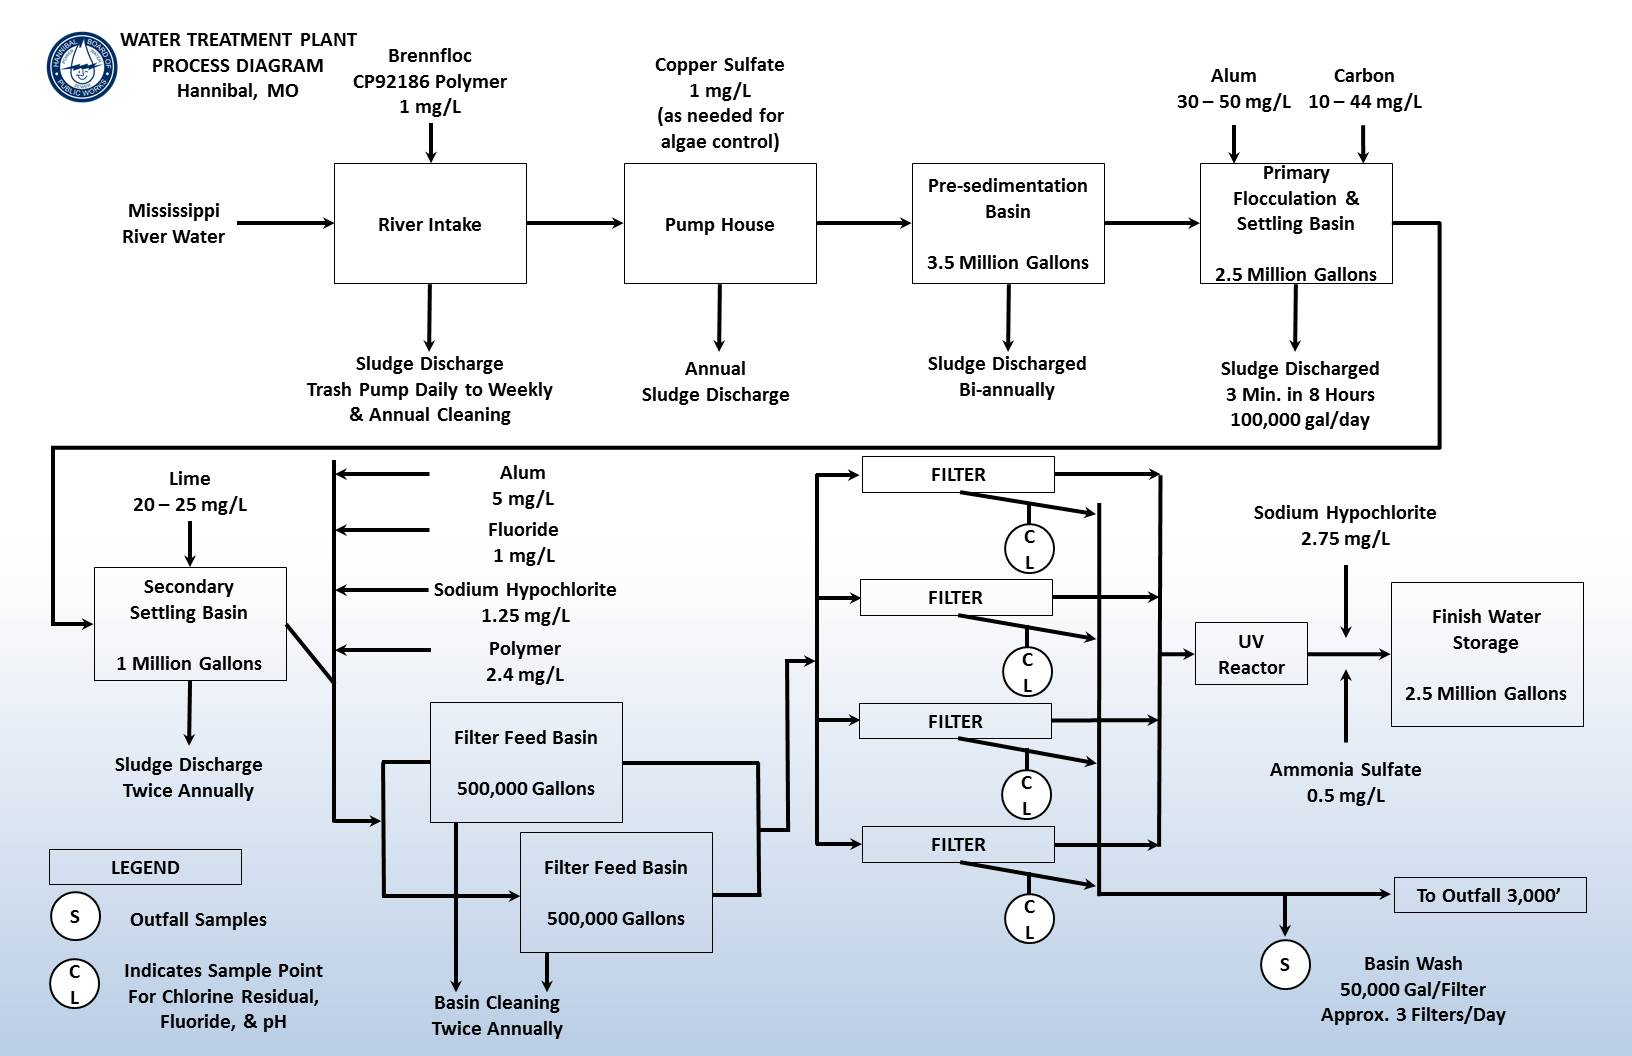 water treatment plant process diagram